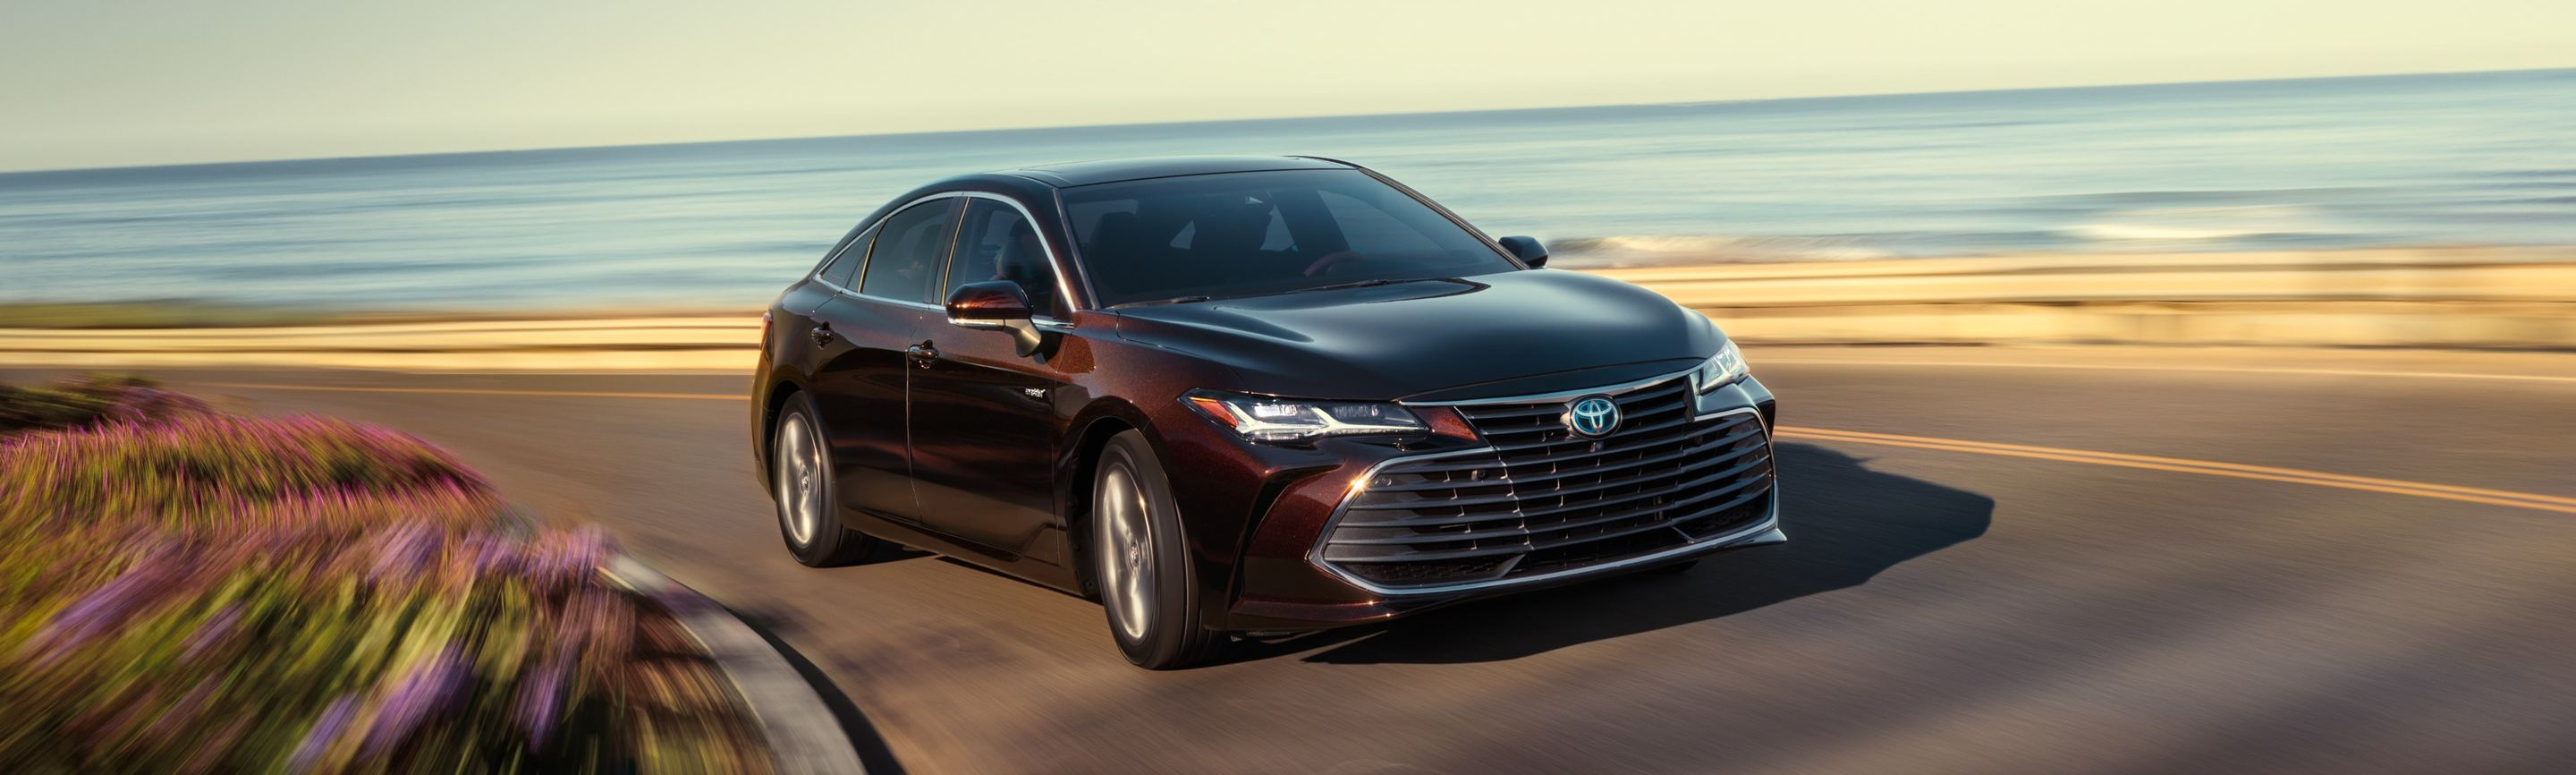 2020 Toyota Avalon for Sale near Davenport, IA